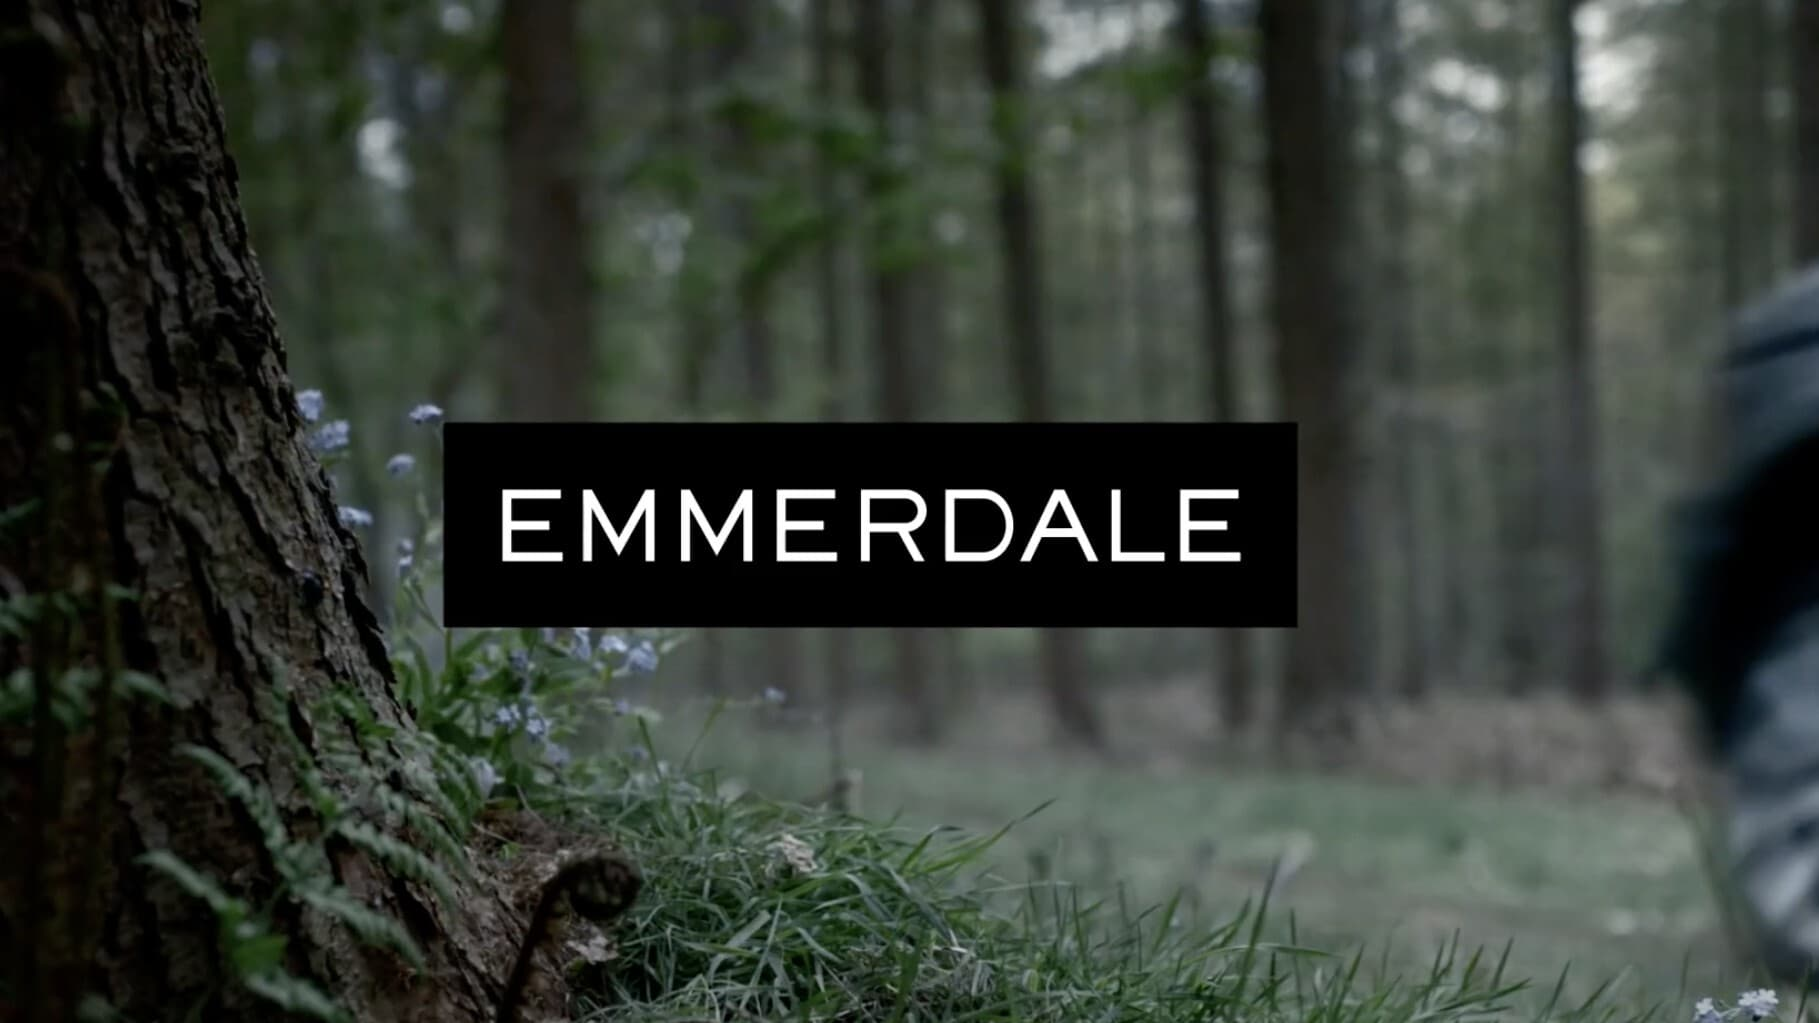 Emmerdale - Season 36 Episode 95 : April 22, 2007